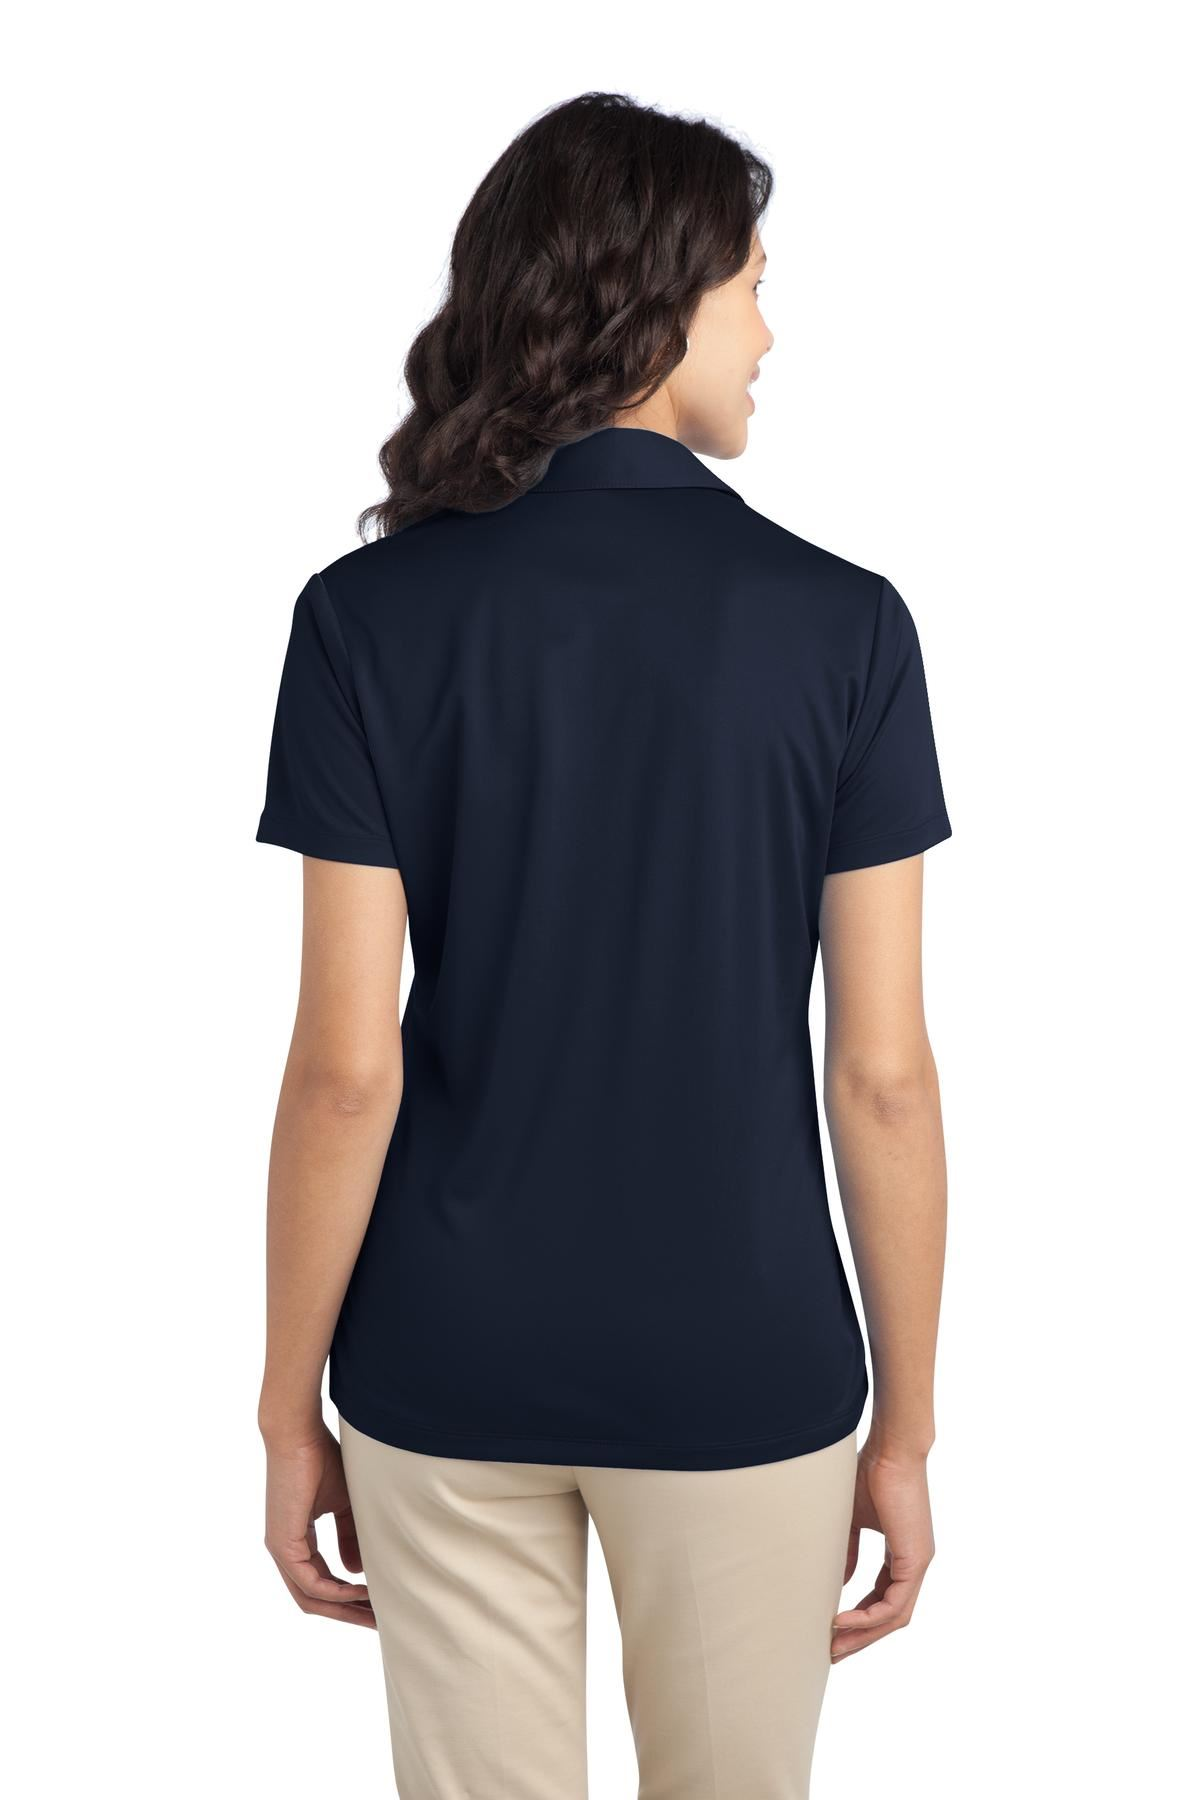 Port-Authority-Womens-Dri-Fit-SIlk-Touch-Performance-Polo-Golf-Shirt-M-L540 thumbnail 19